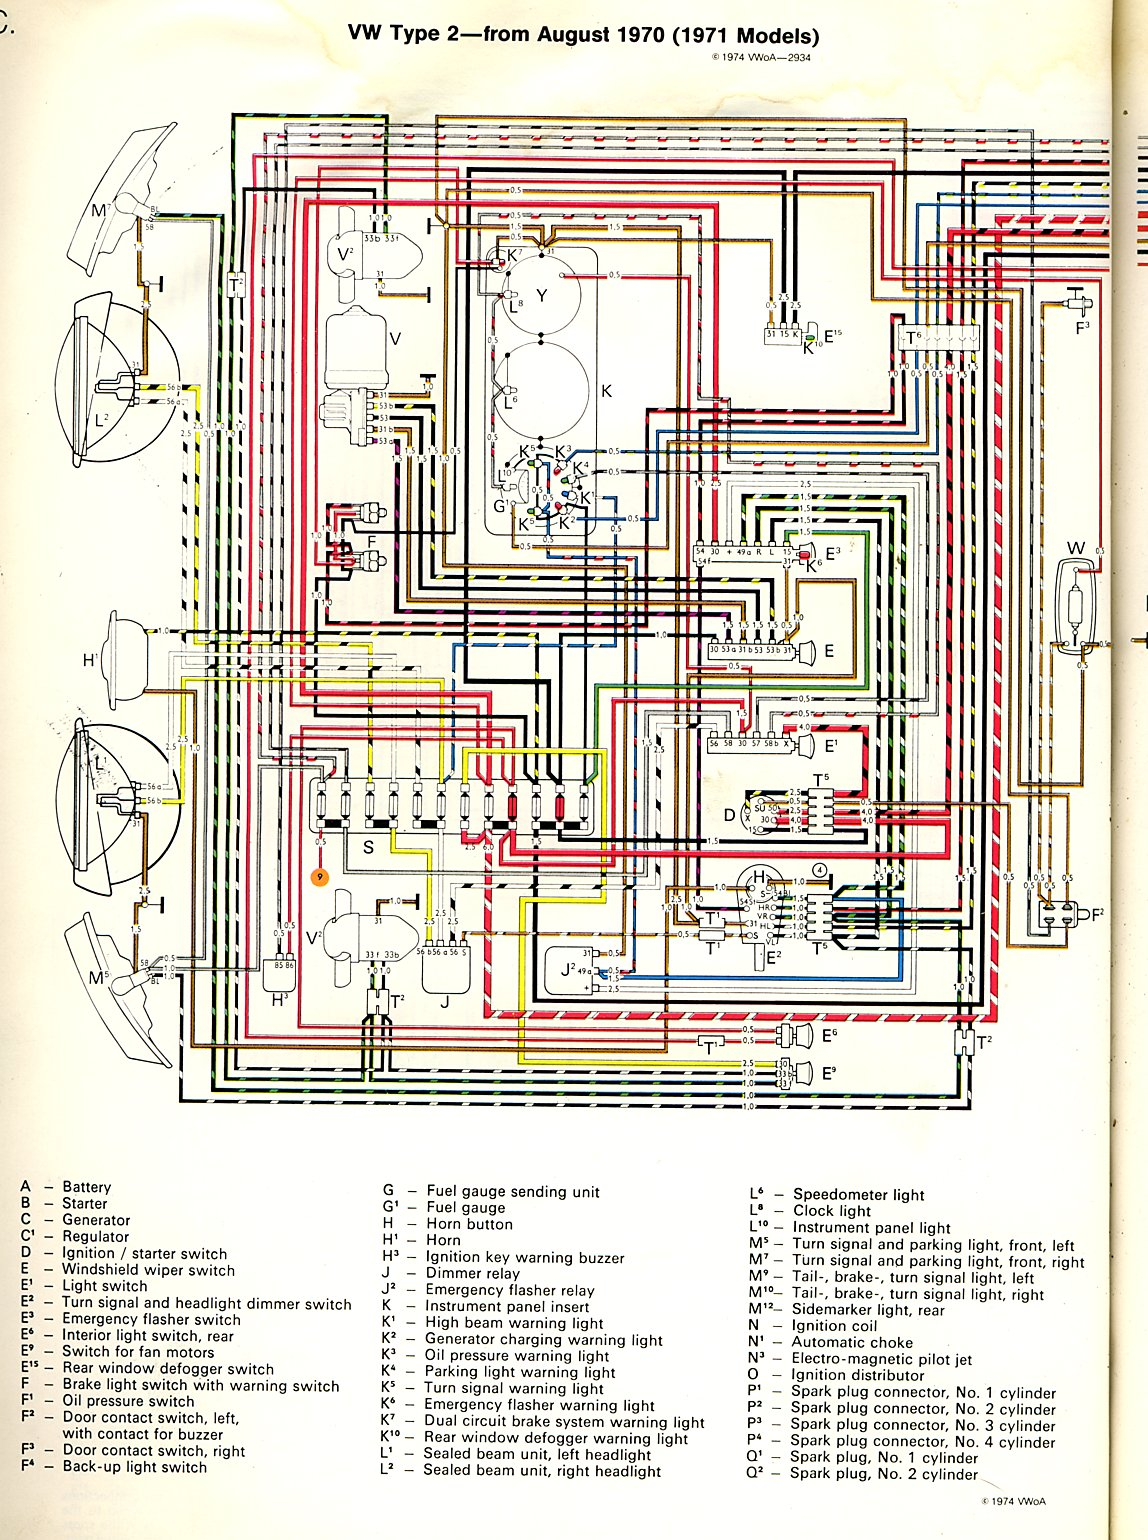 1971 vw bug fuse diagram 1971 bus wiring diagram thegoldenbug com 1971 vw bug wiring diagram #2